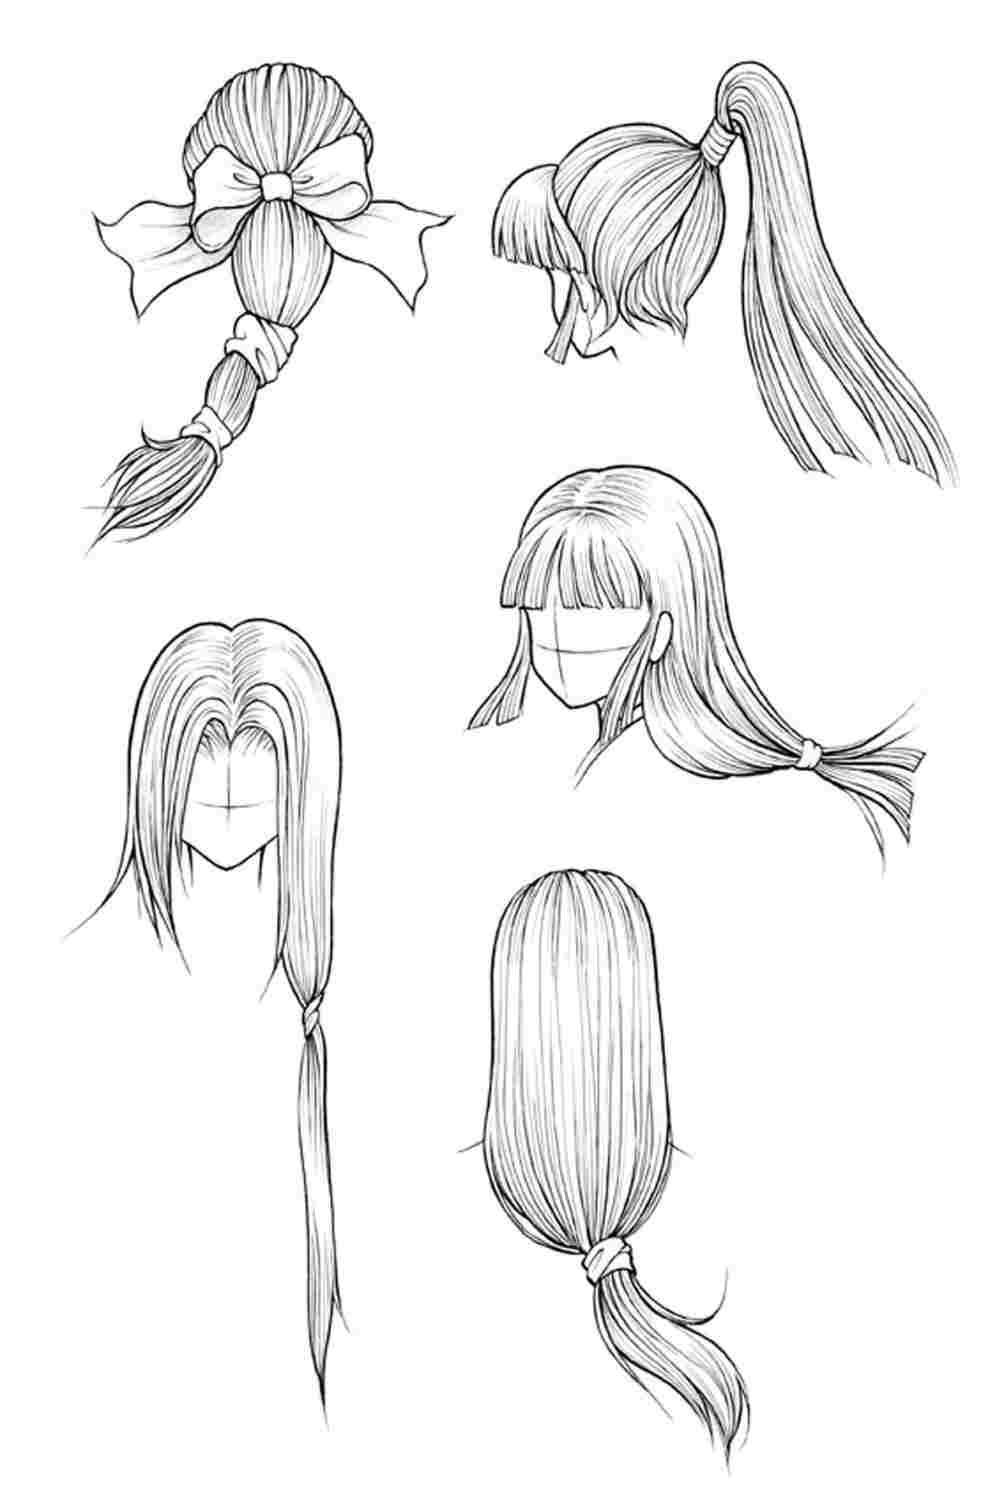 Hairstyles For Girls Sketch How To Draw Cute Hairstyles For